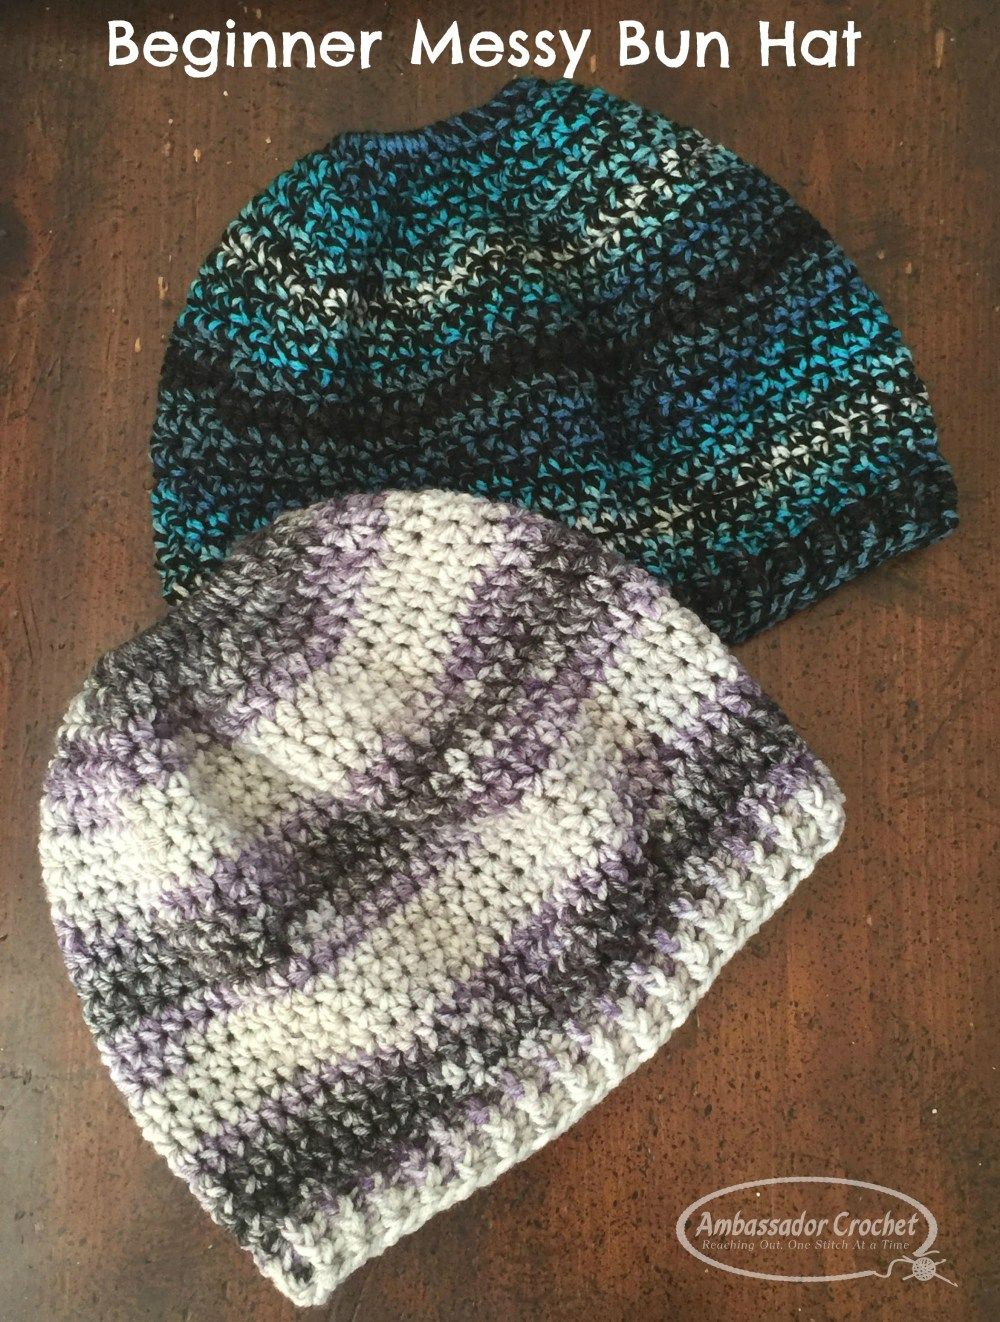 Beginner Messy Bun Hat Crochet Pattern - Ambassador Crochet